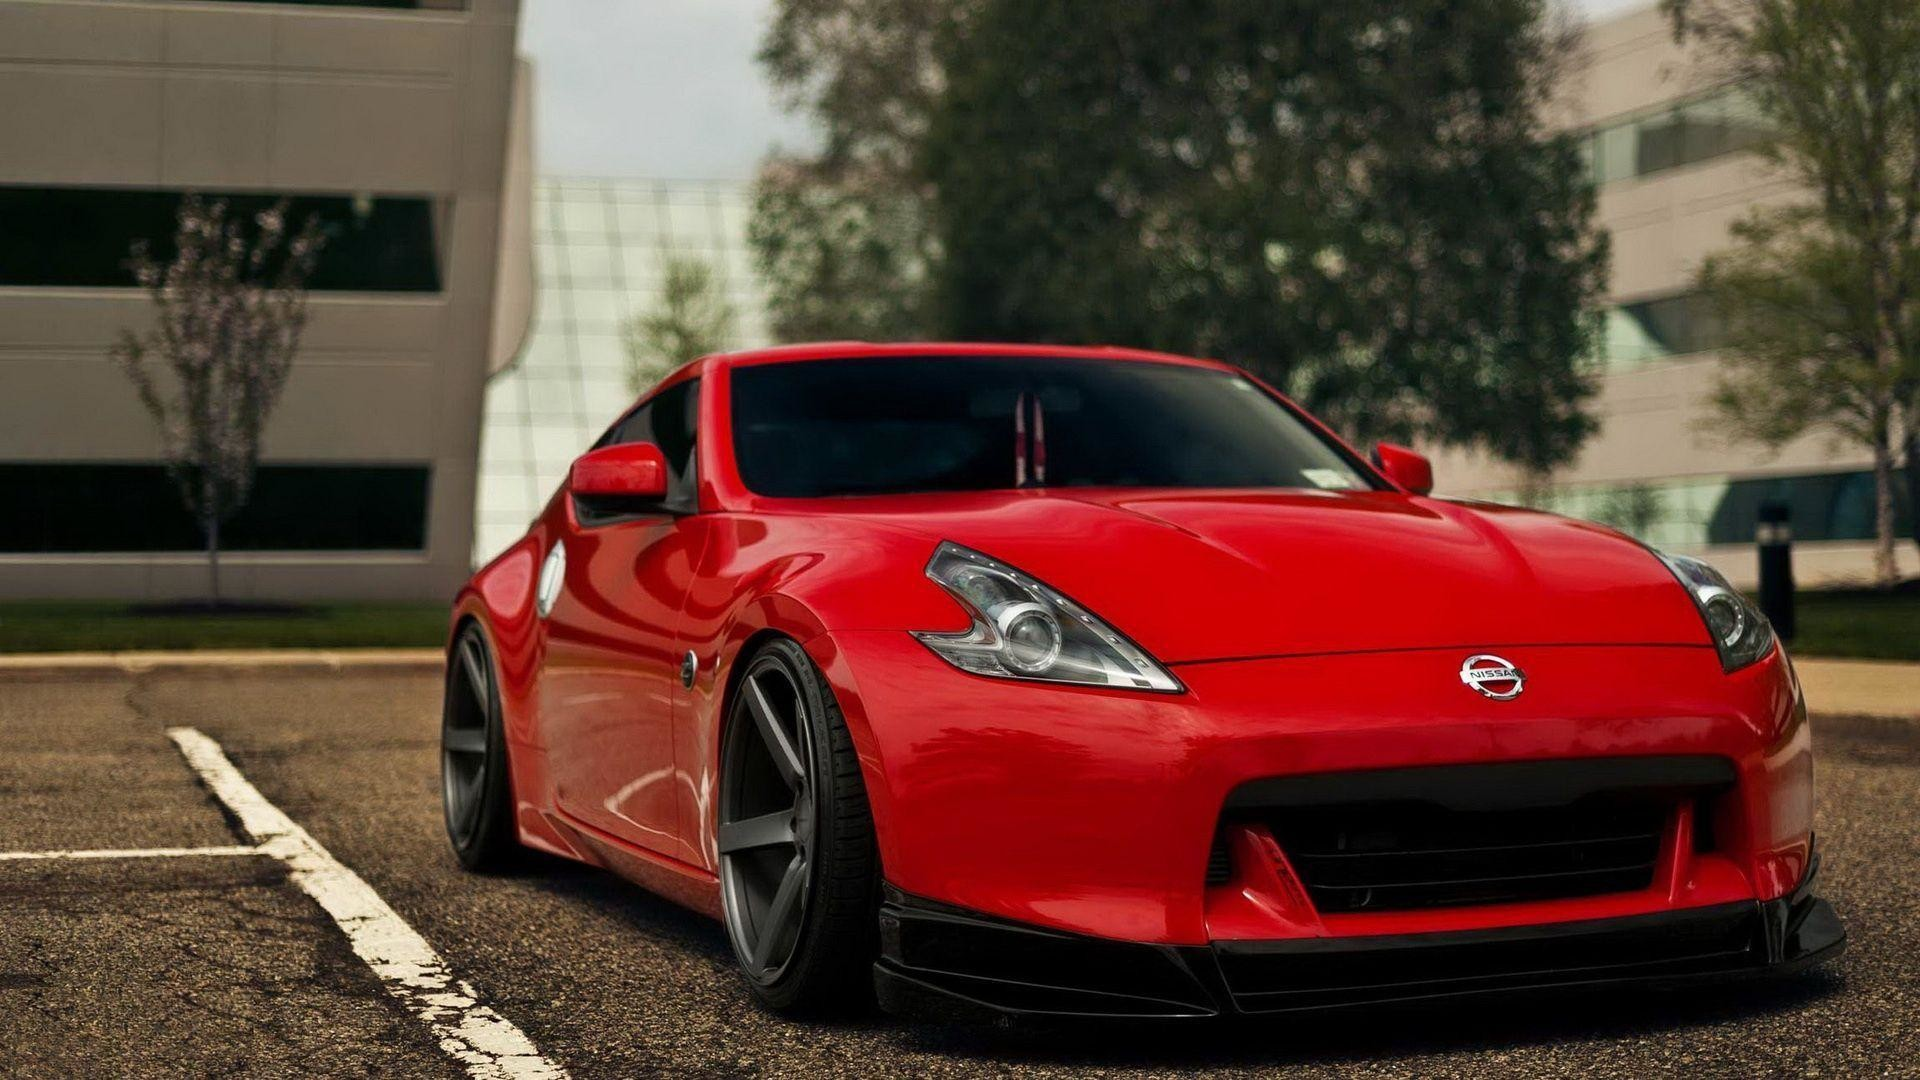 Nissan 370z Wallpapers Hd 73 Images